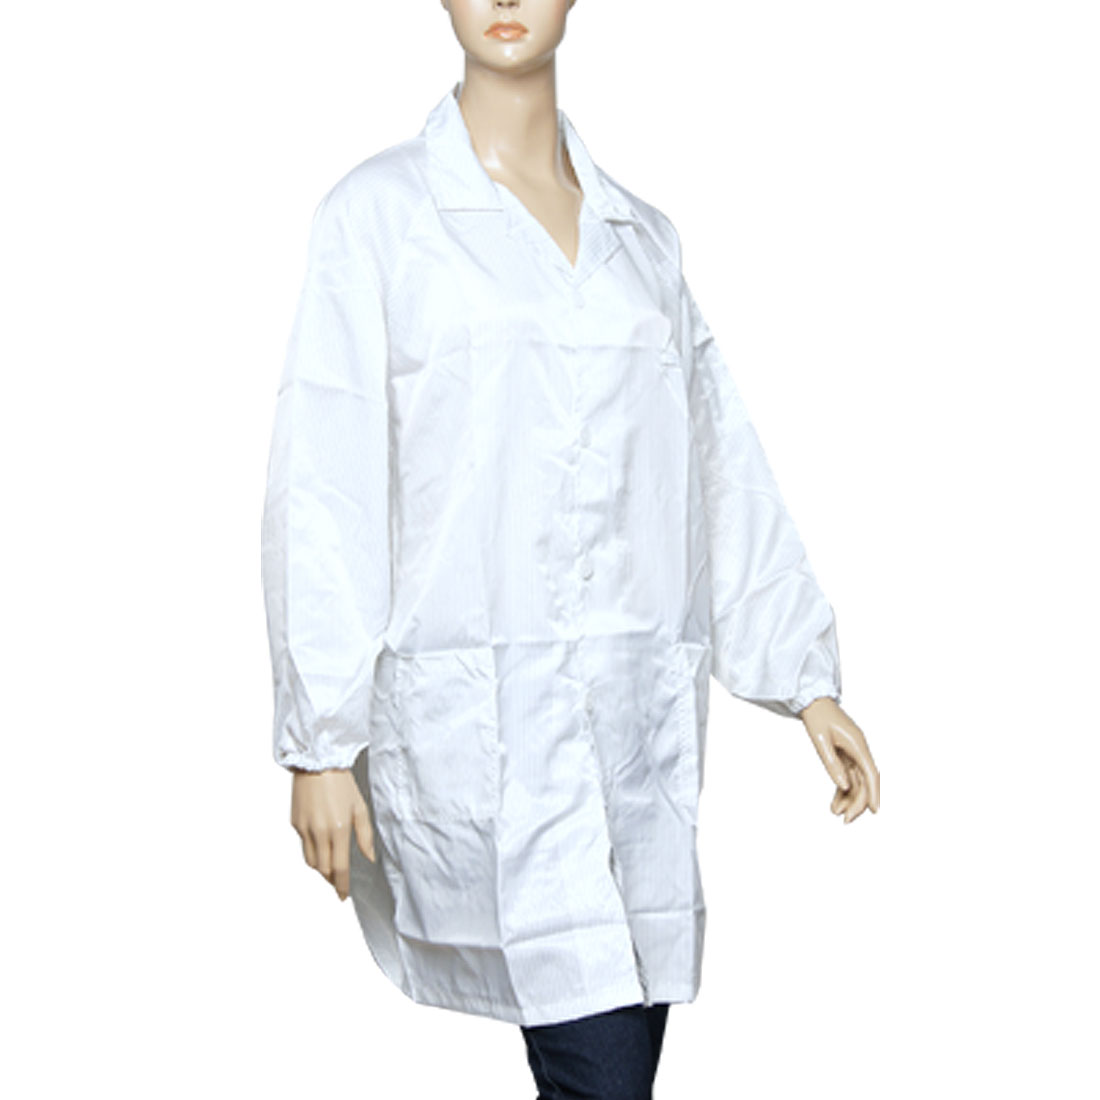 Button up White Point Antistatic Coat XL for Adult